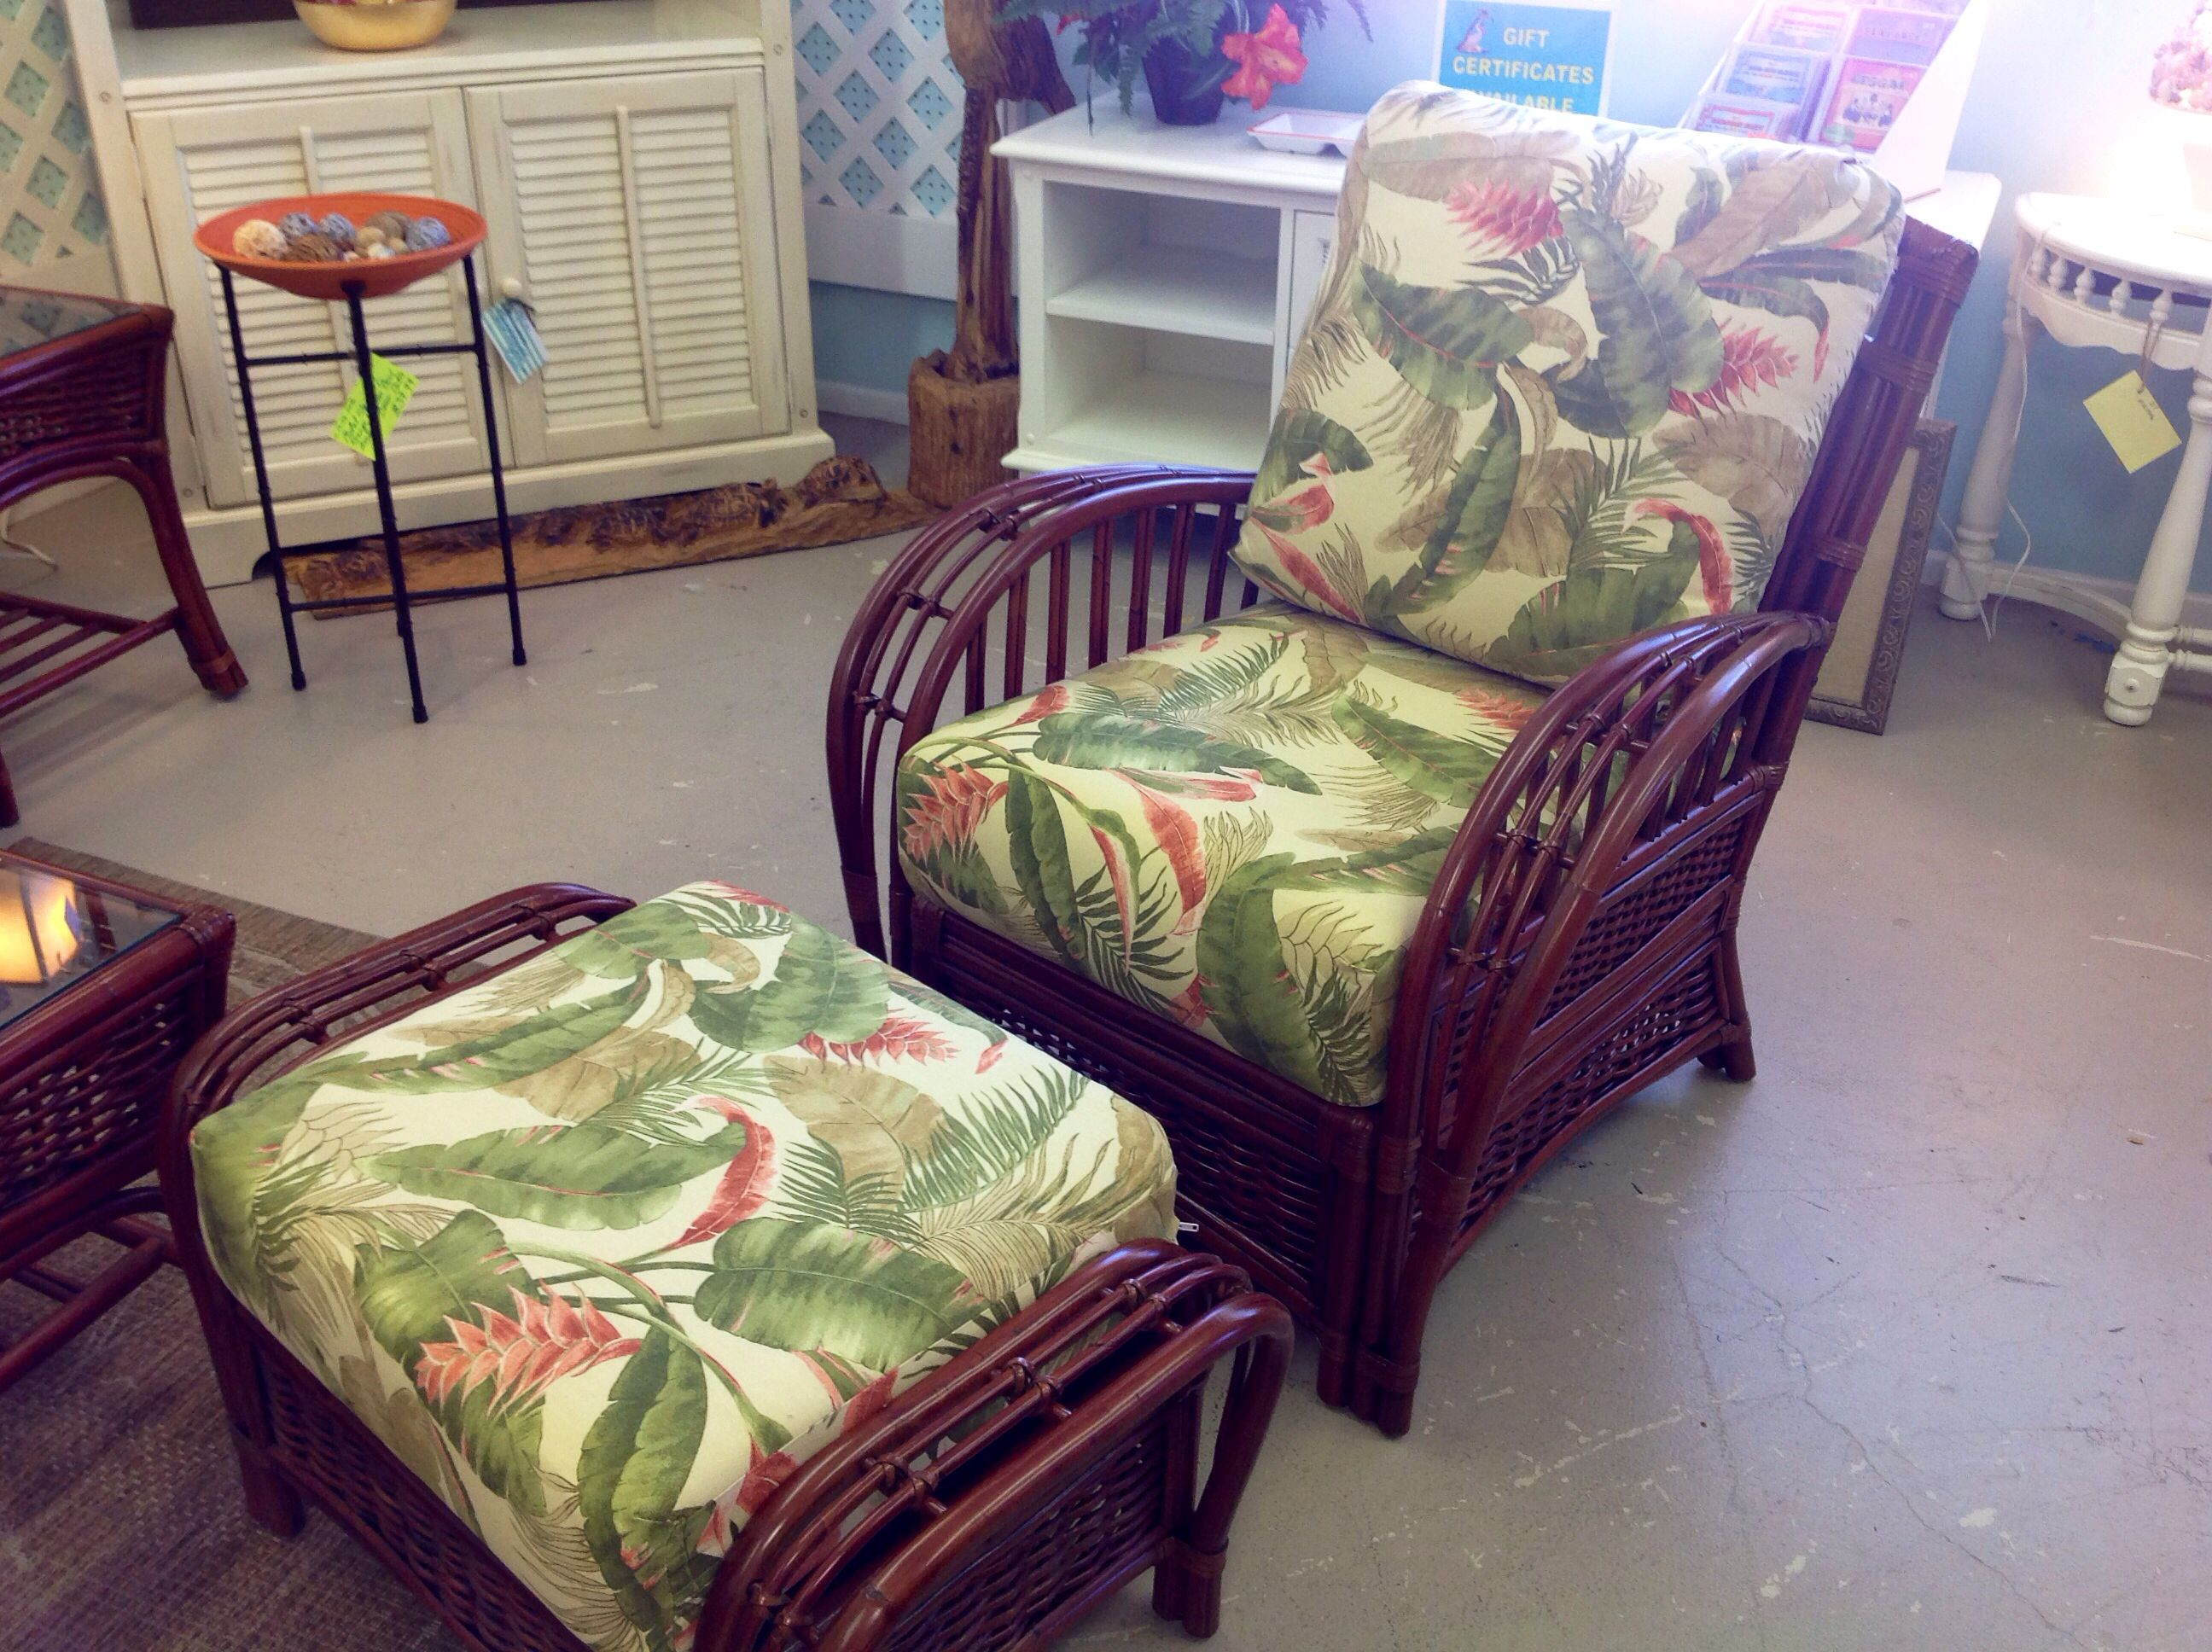 When you're short on cash or you can't find exactly what you want in stores, secondhand furniture can be an economical option for filling your space. Pin by Pelicans and Flamingos on Pelicans and Flamingos ...